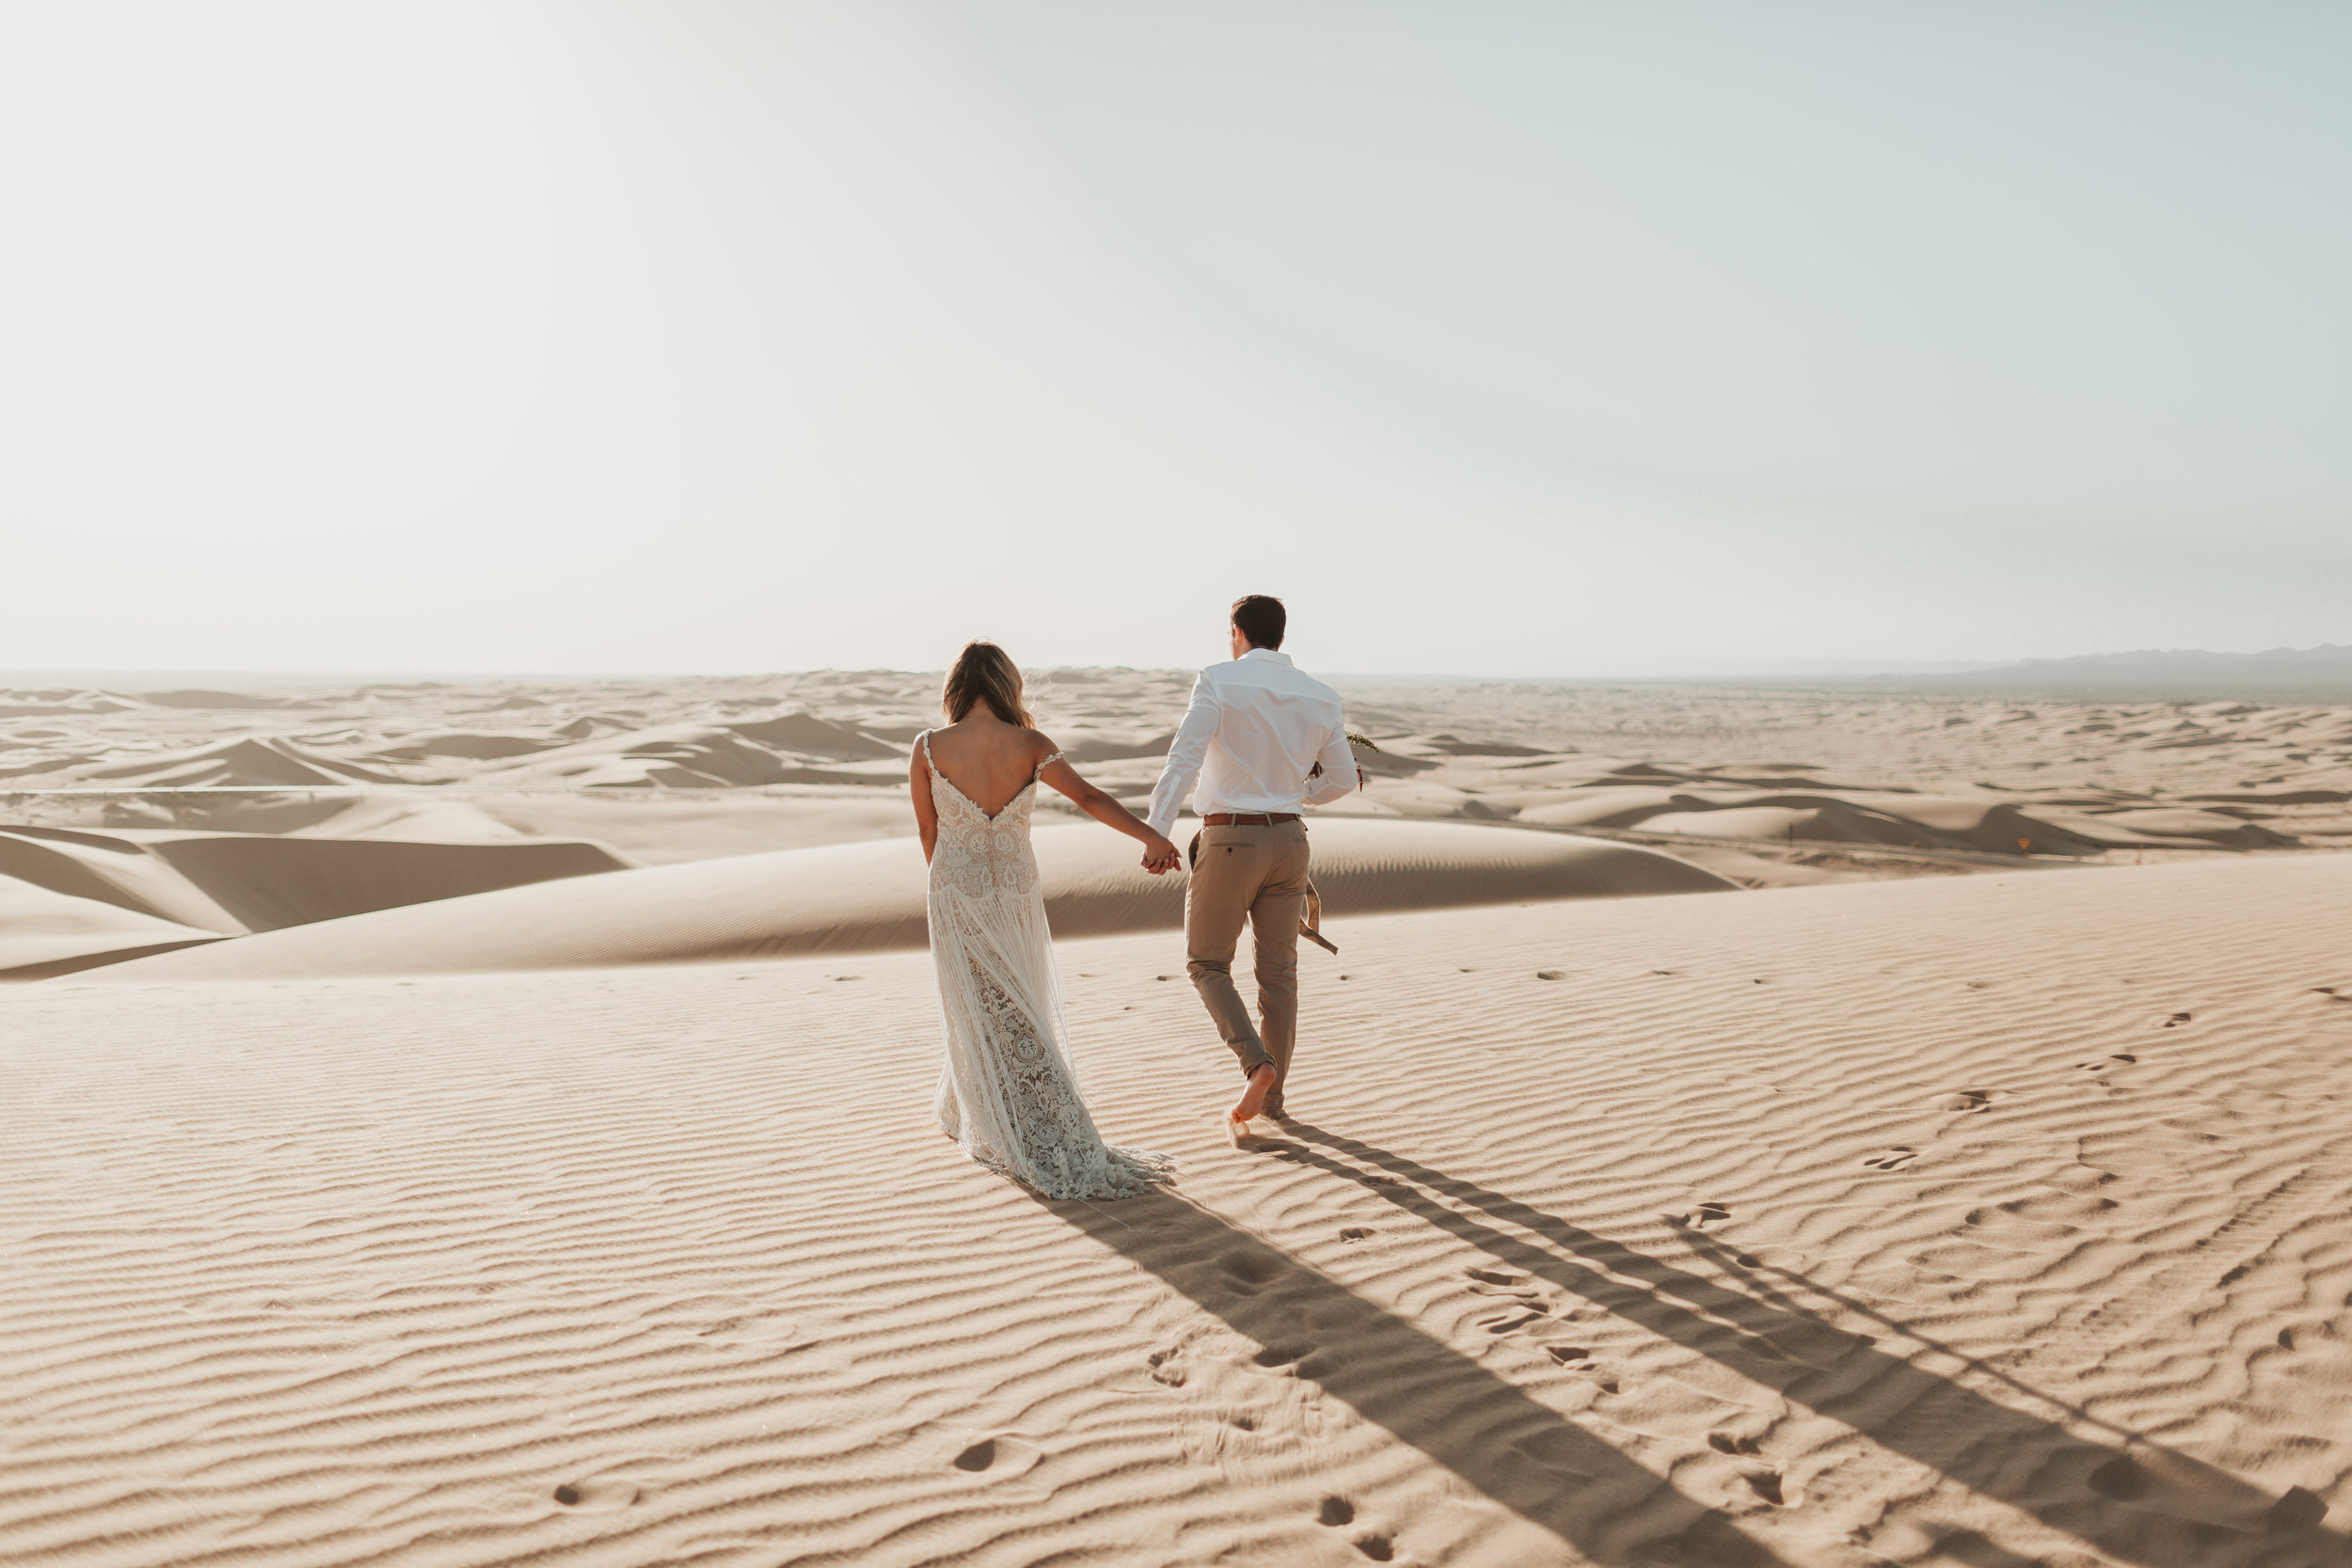 couple walking in sand dunes together holding hands